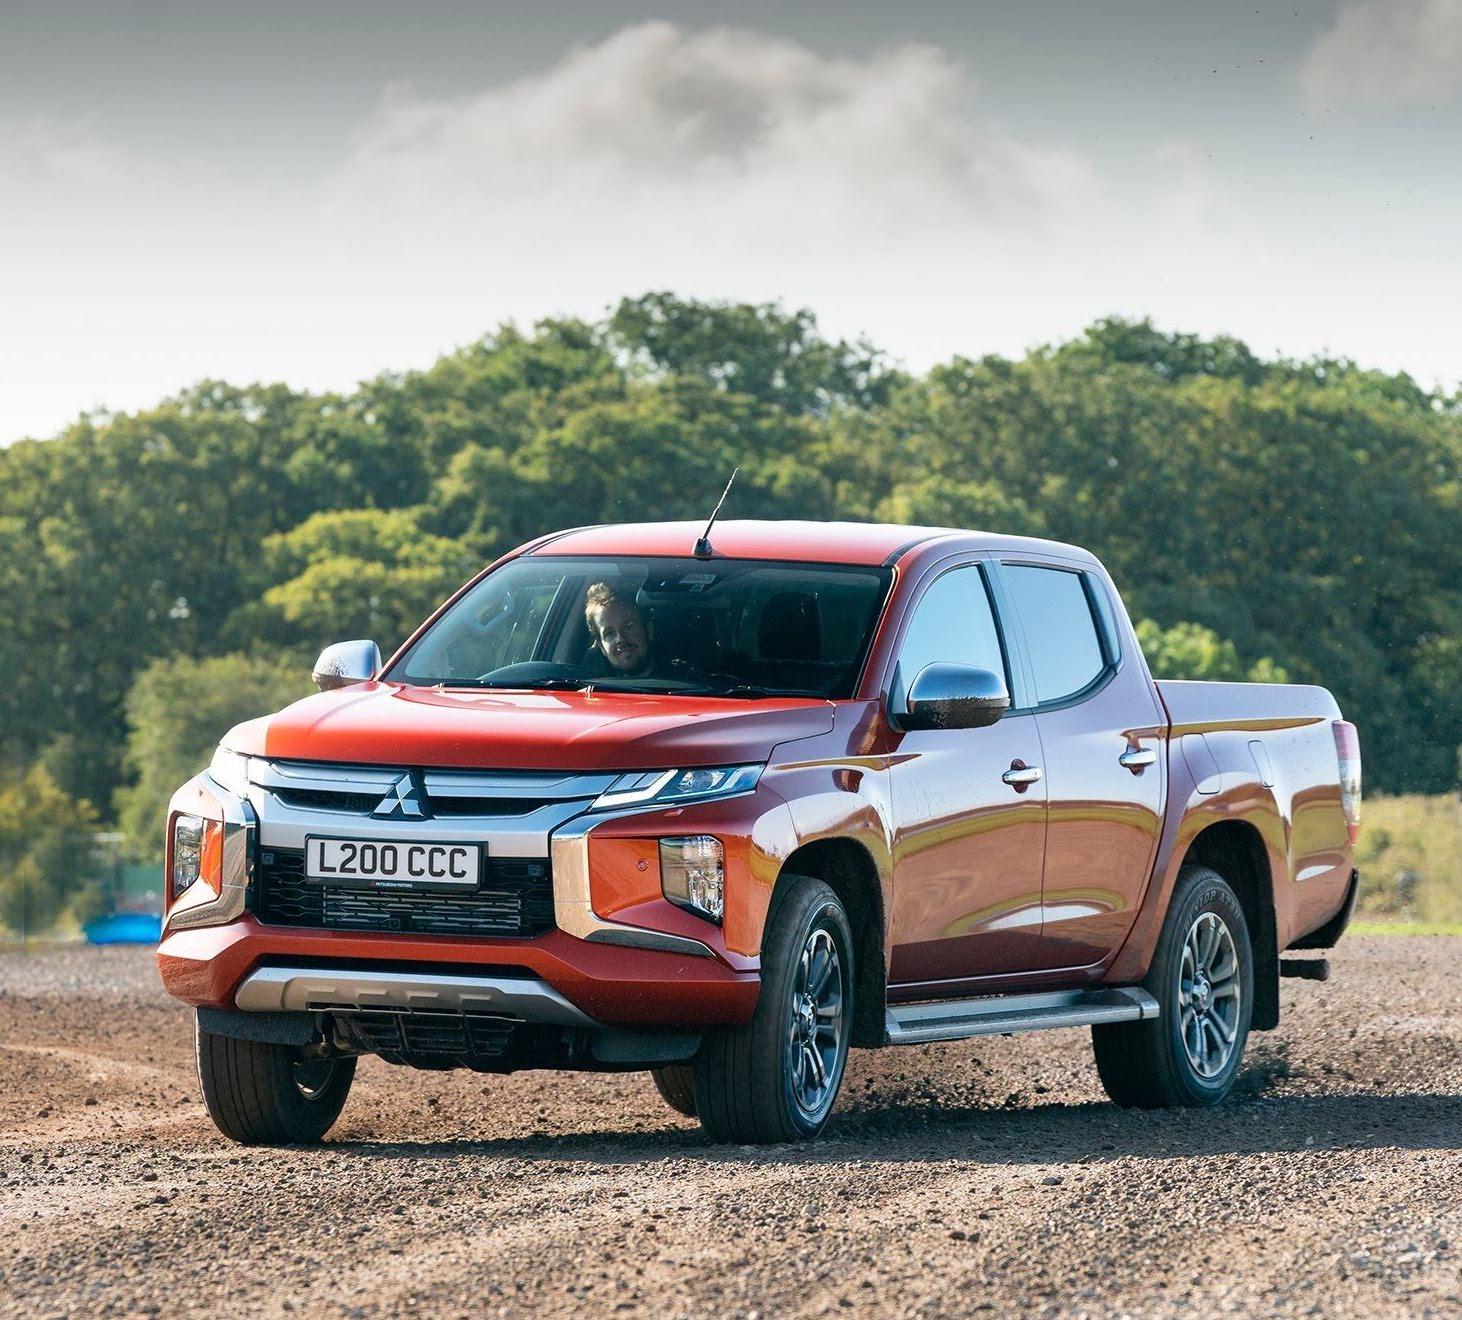 Easy Select Vs Super Select Mitsubishi 4wd System Delivers All Terrain Performance